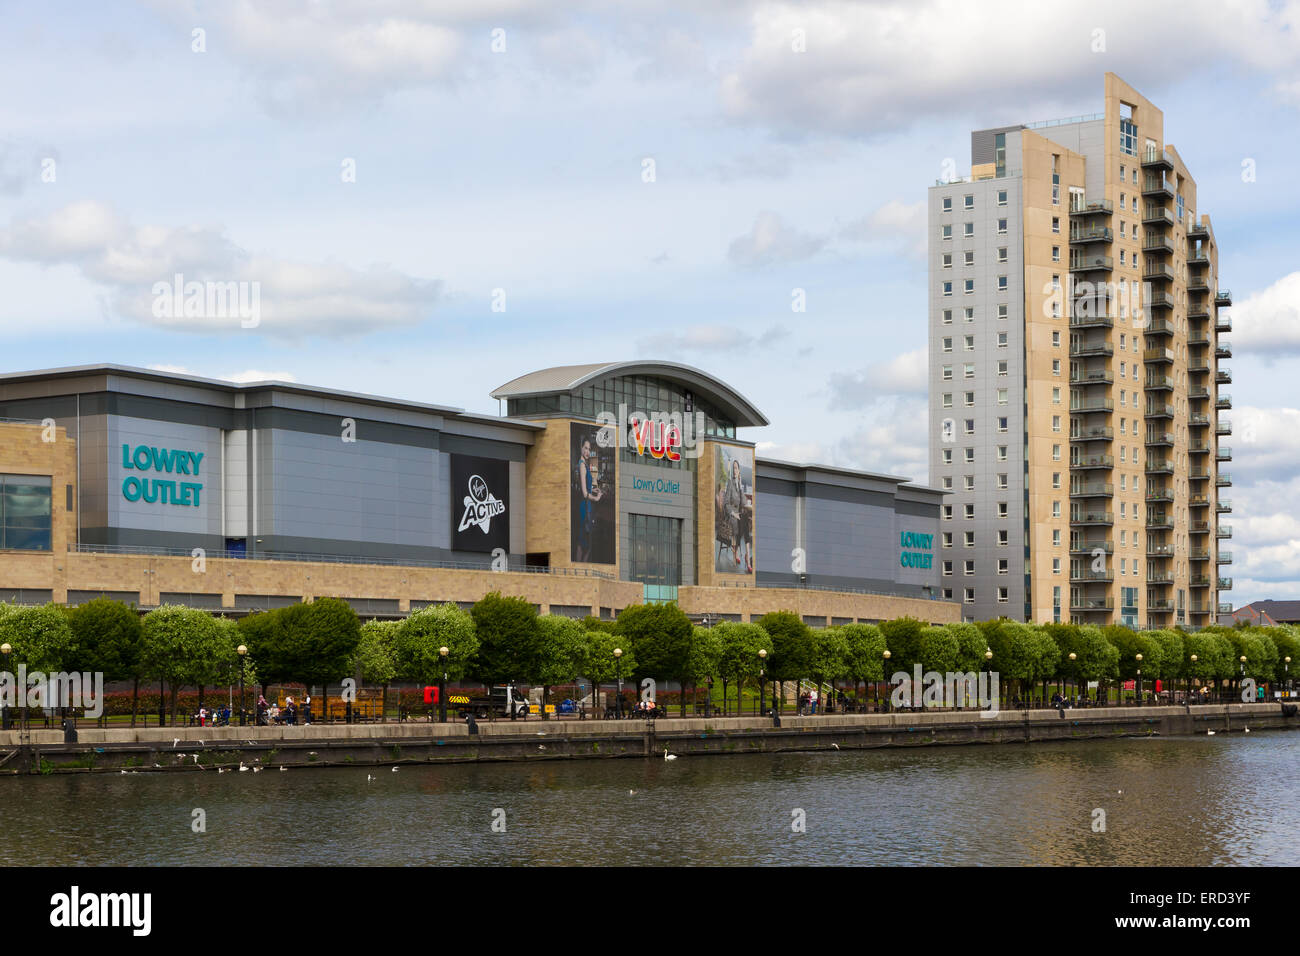 The Lowry Outlet SHopping Centre in Salford Quays, Manchester. Stock Photo